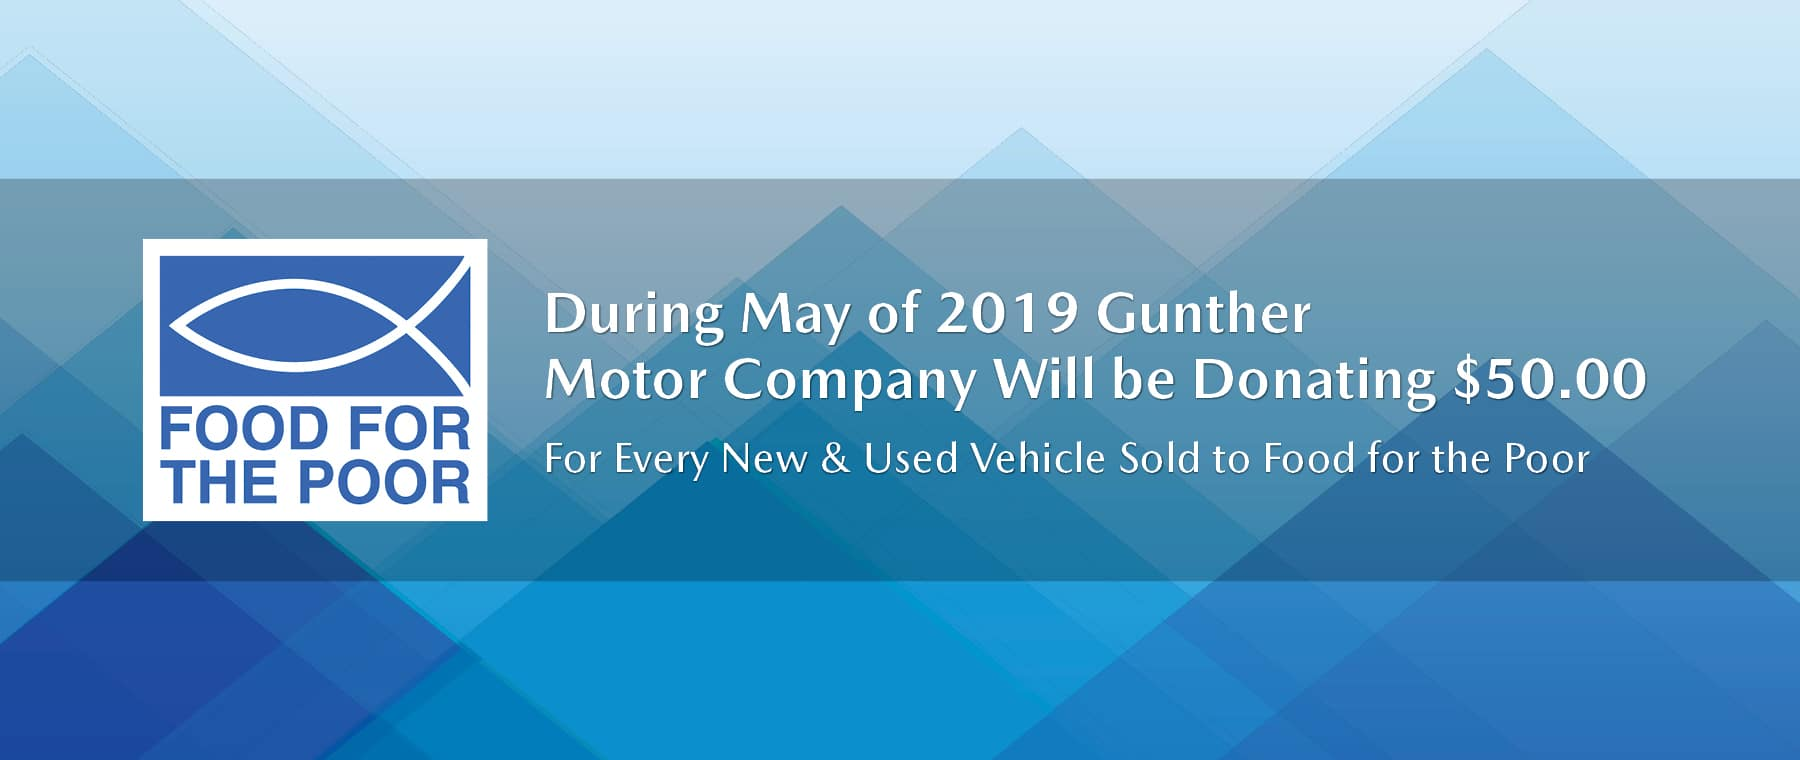 During may, Gunther will donate $50 for every vehicle sold to food for the poor.